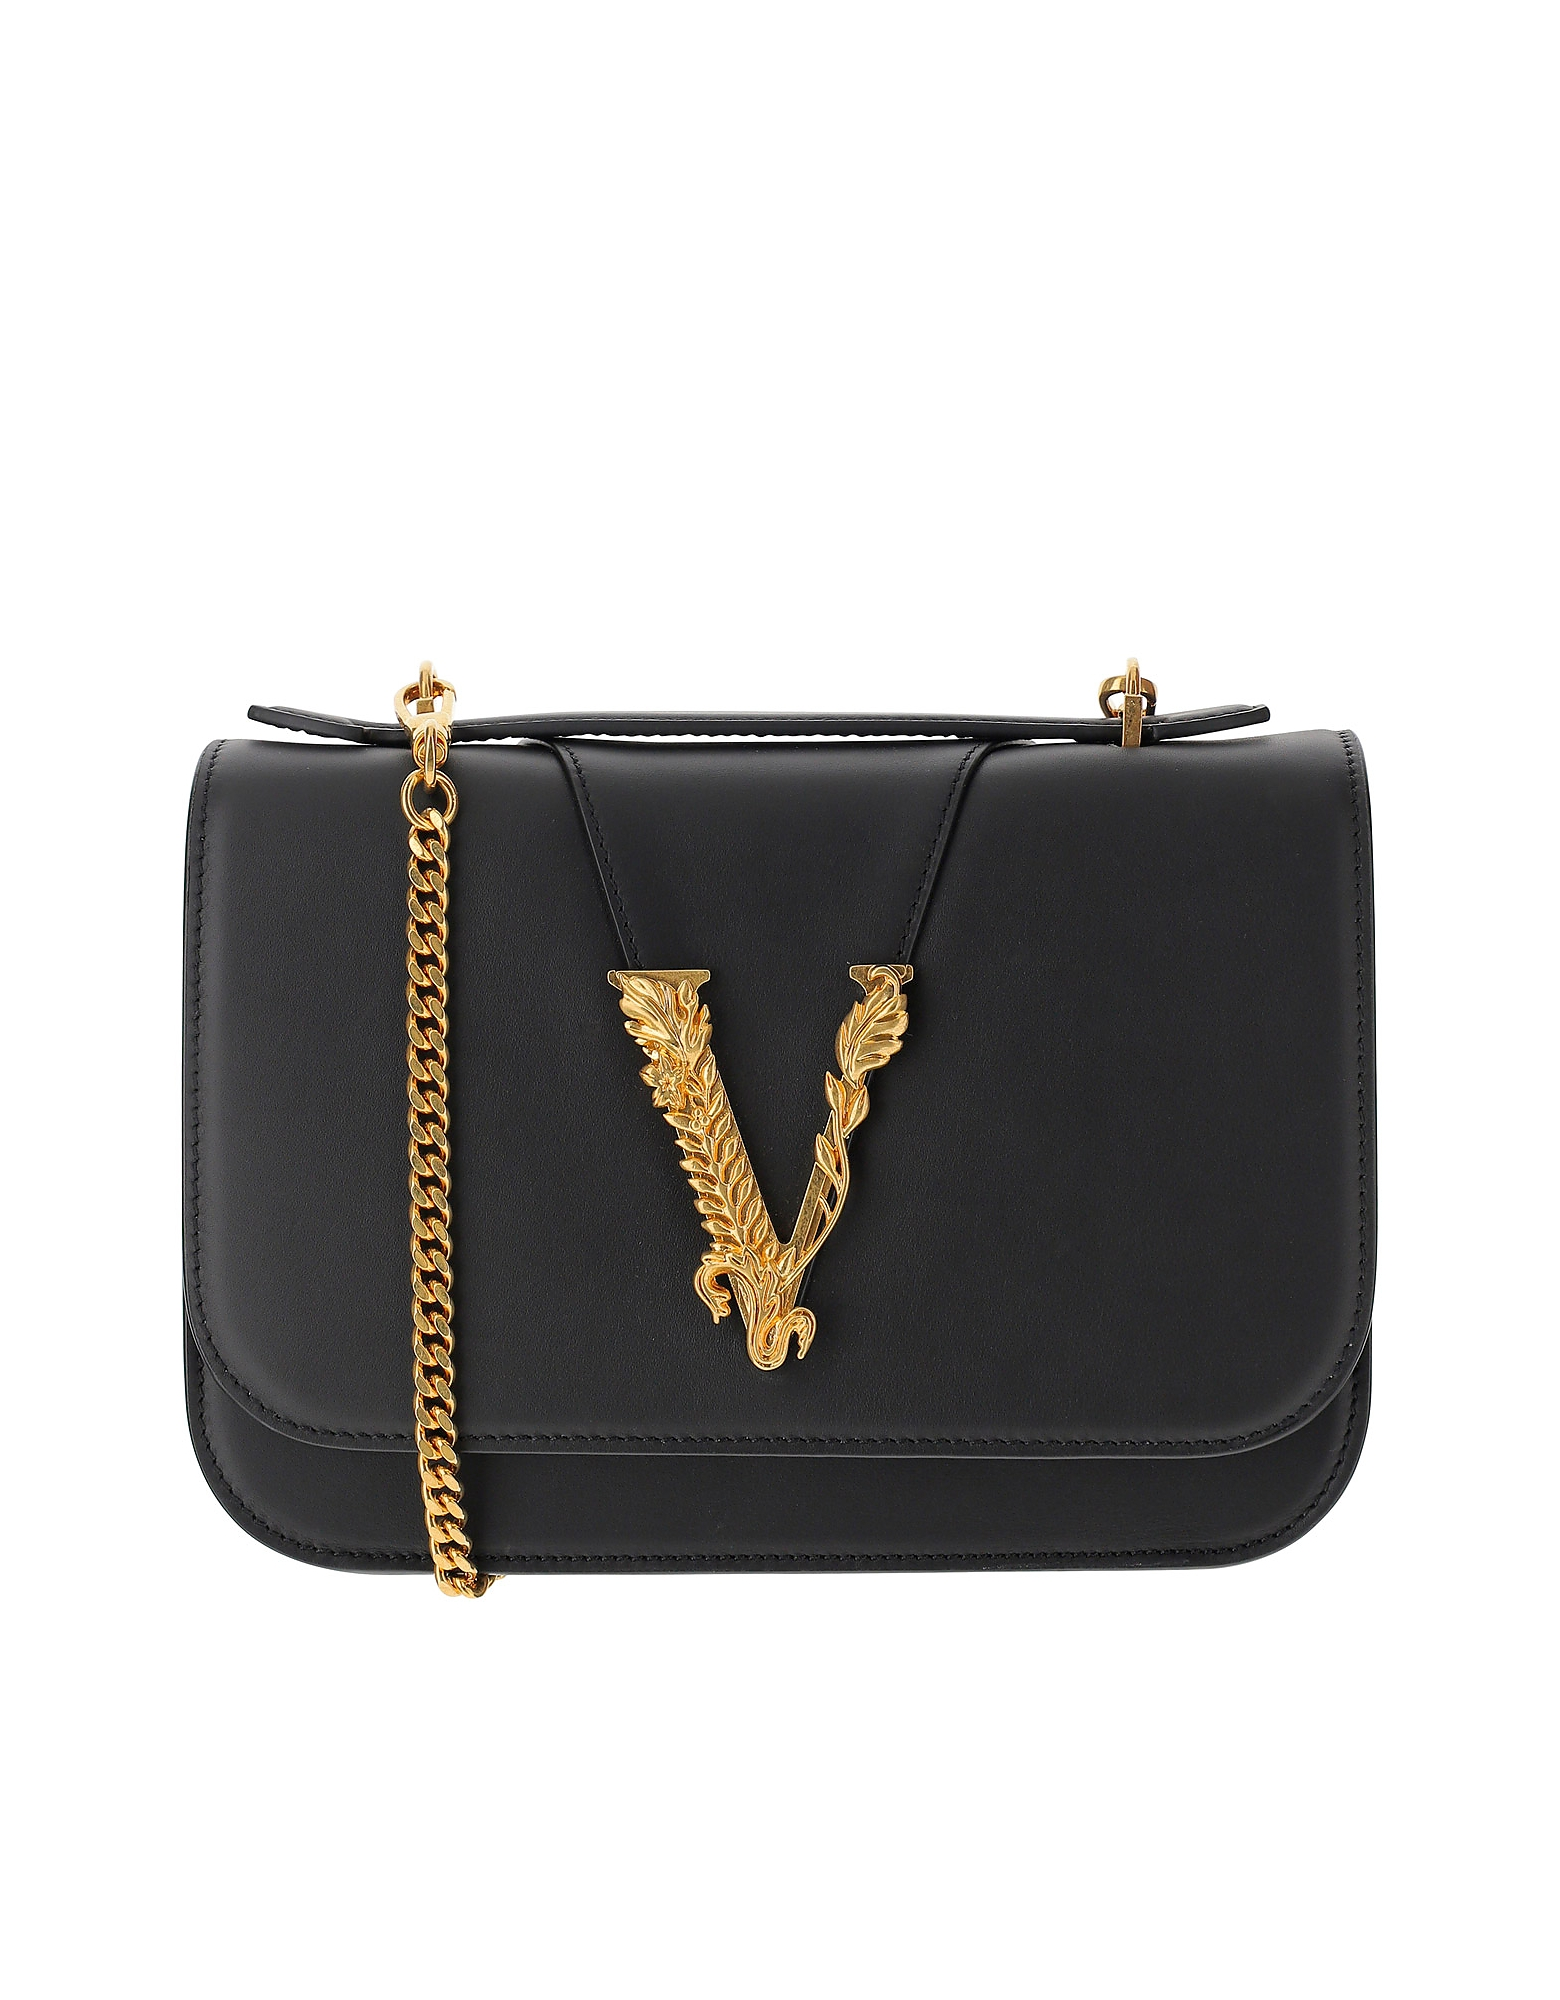 Versace Designer Handbags, Black Leather V Barocco Closure Shoulder Bag